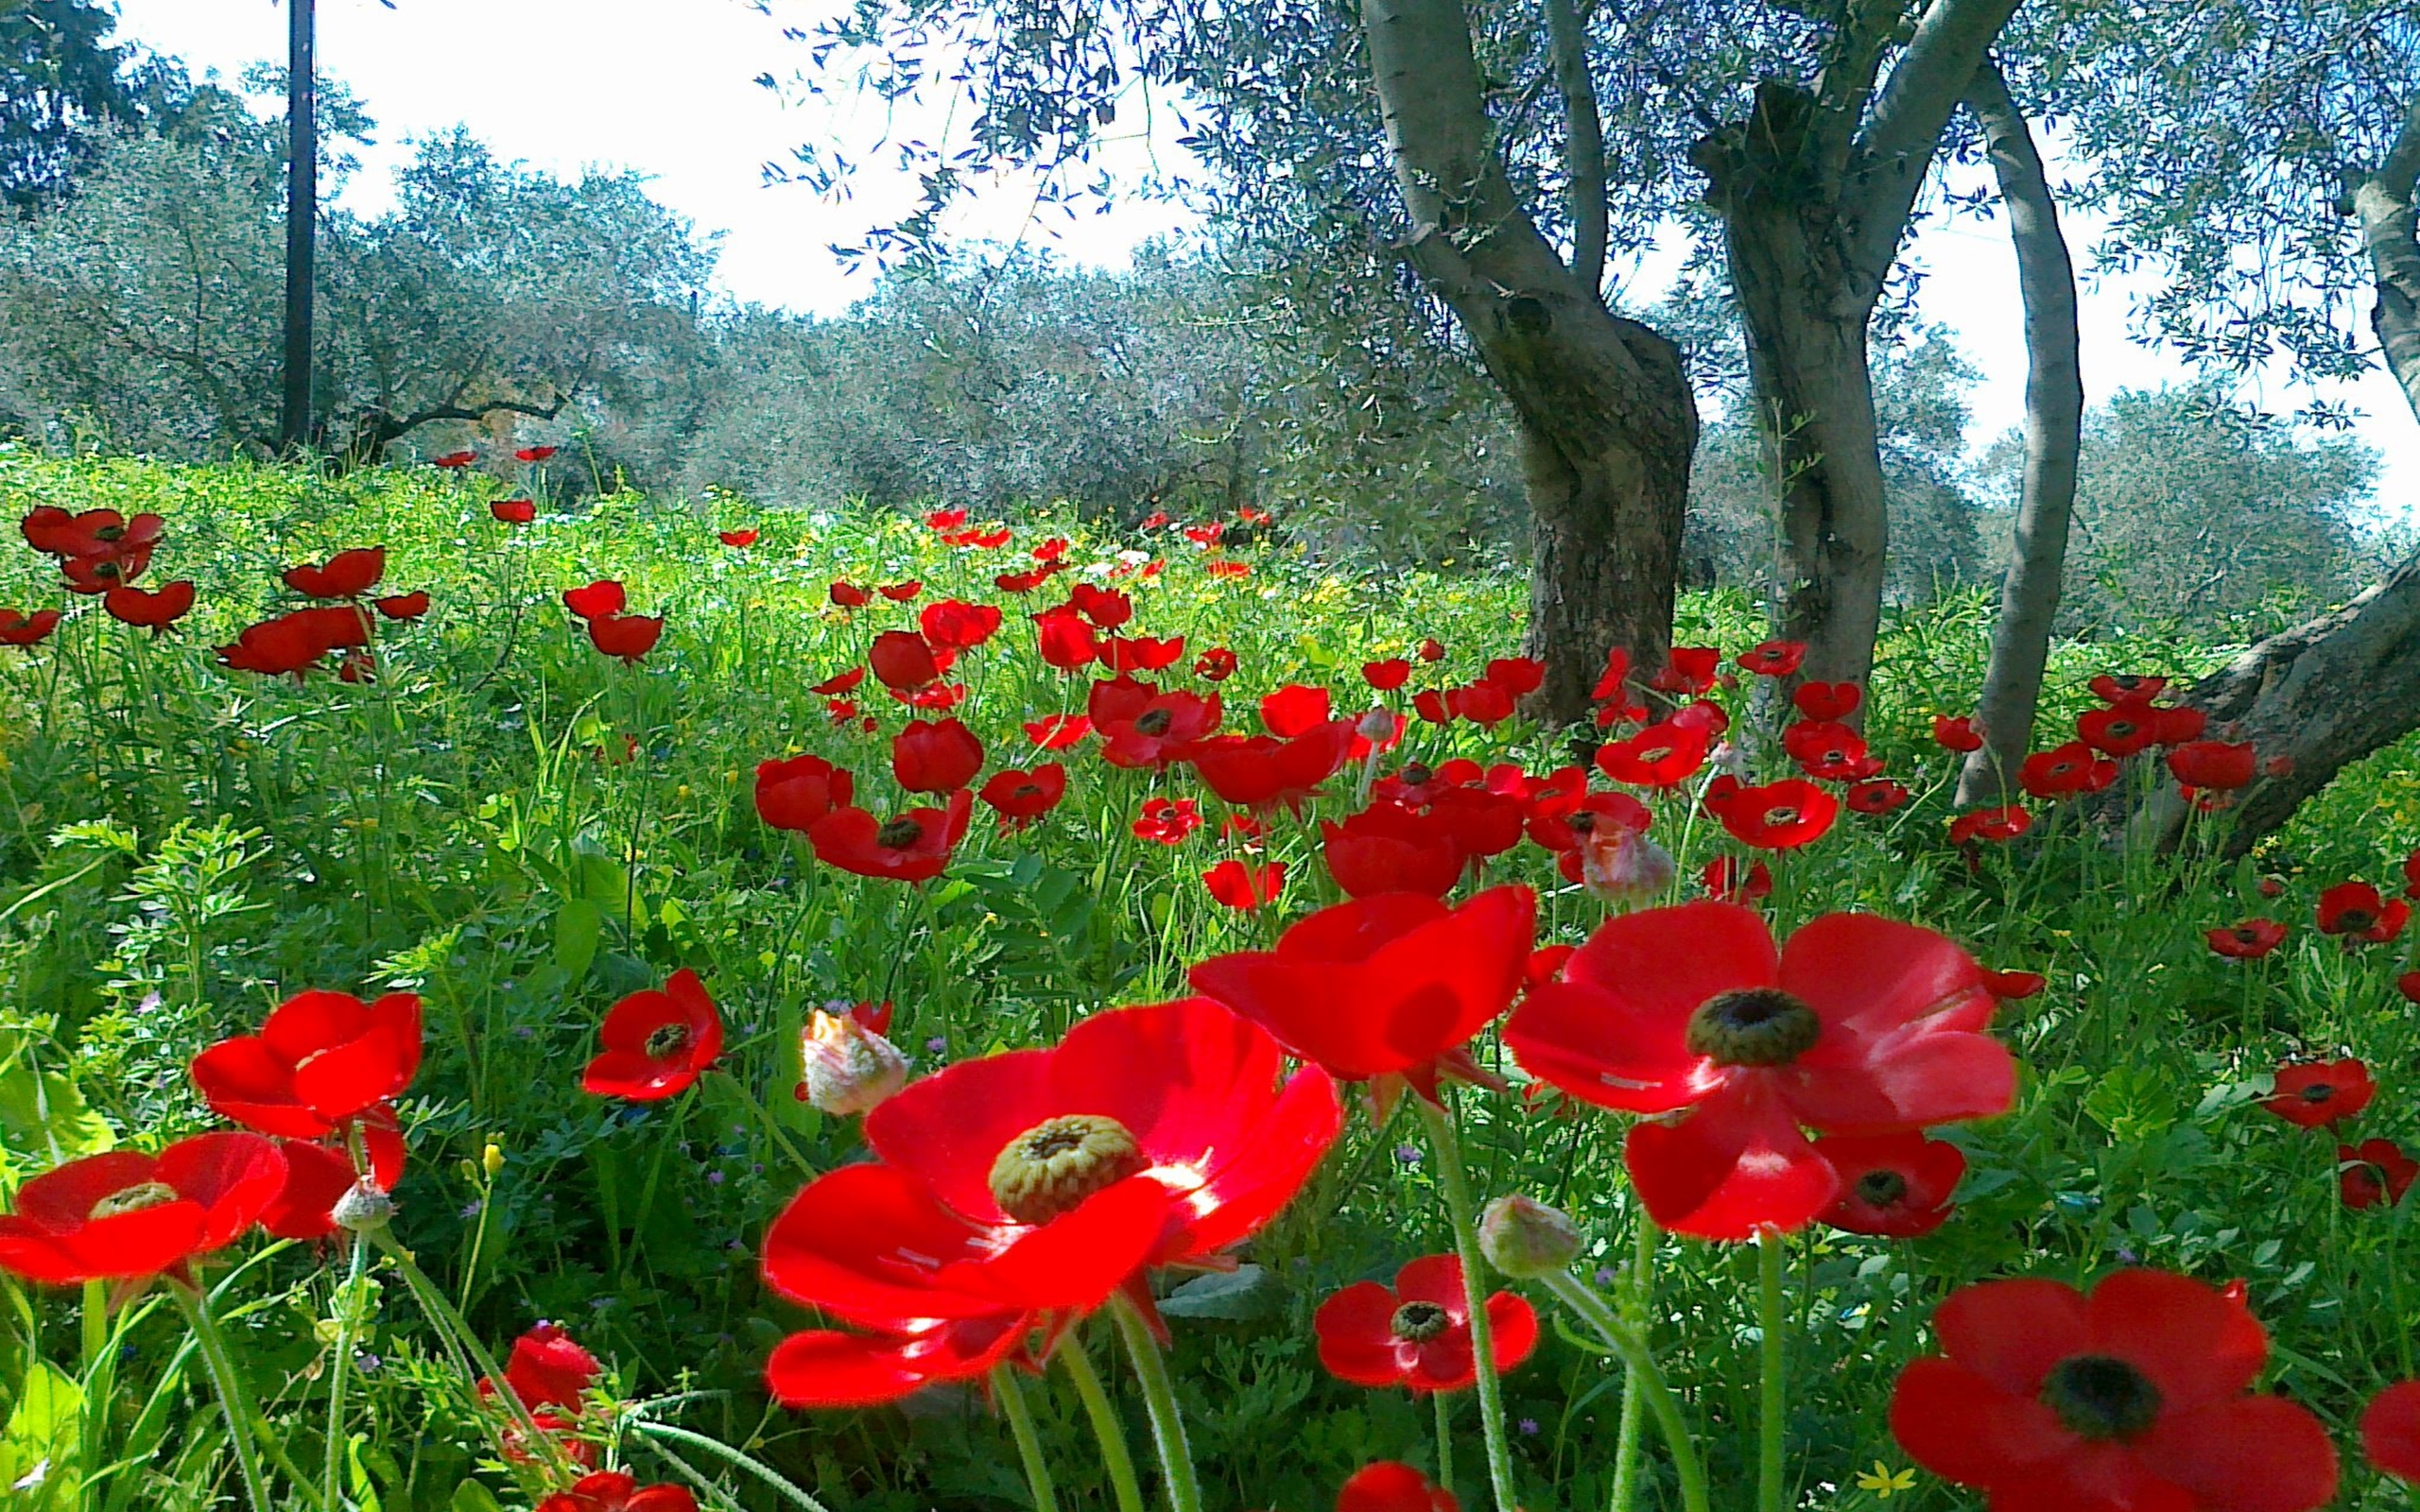 Red poppies in field hd wallpaper background image 2560x1600 id 682848 wallpaper abyss - Poppy wallpaper ...